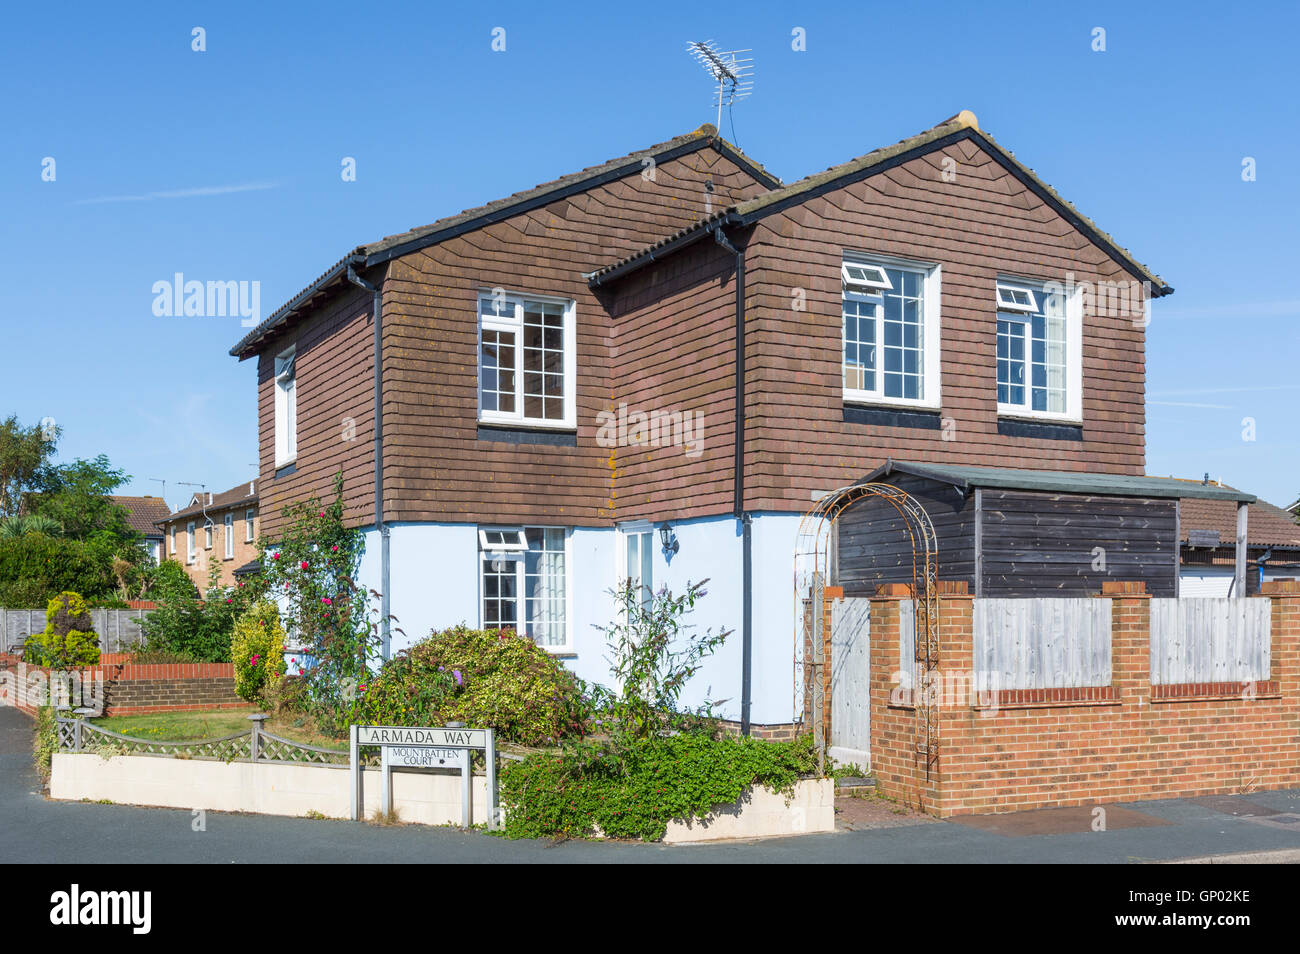 Tile hung corner house with blue sky in the UK. - Stock Image